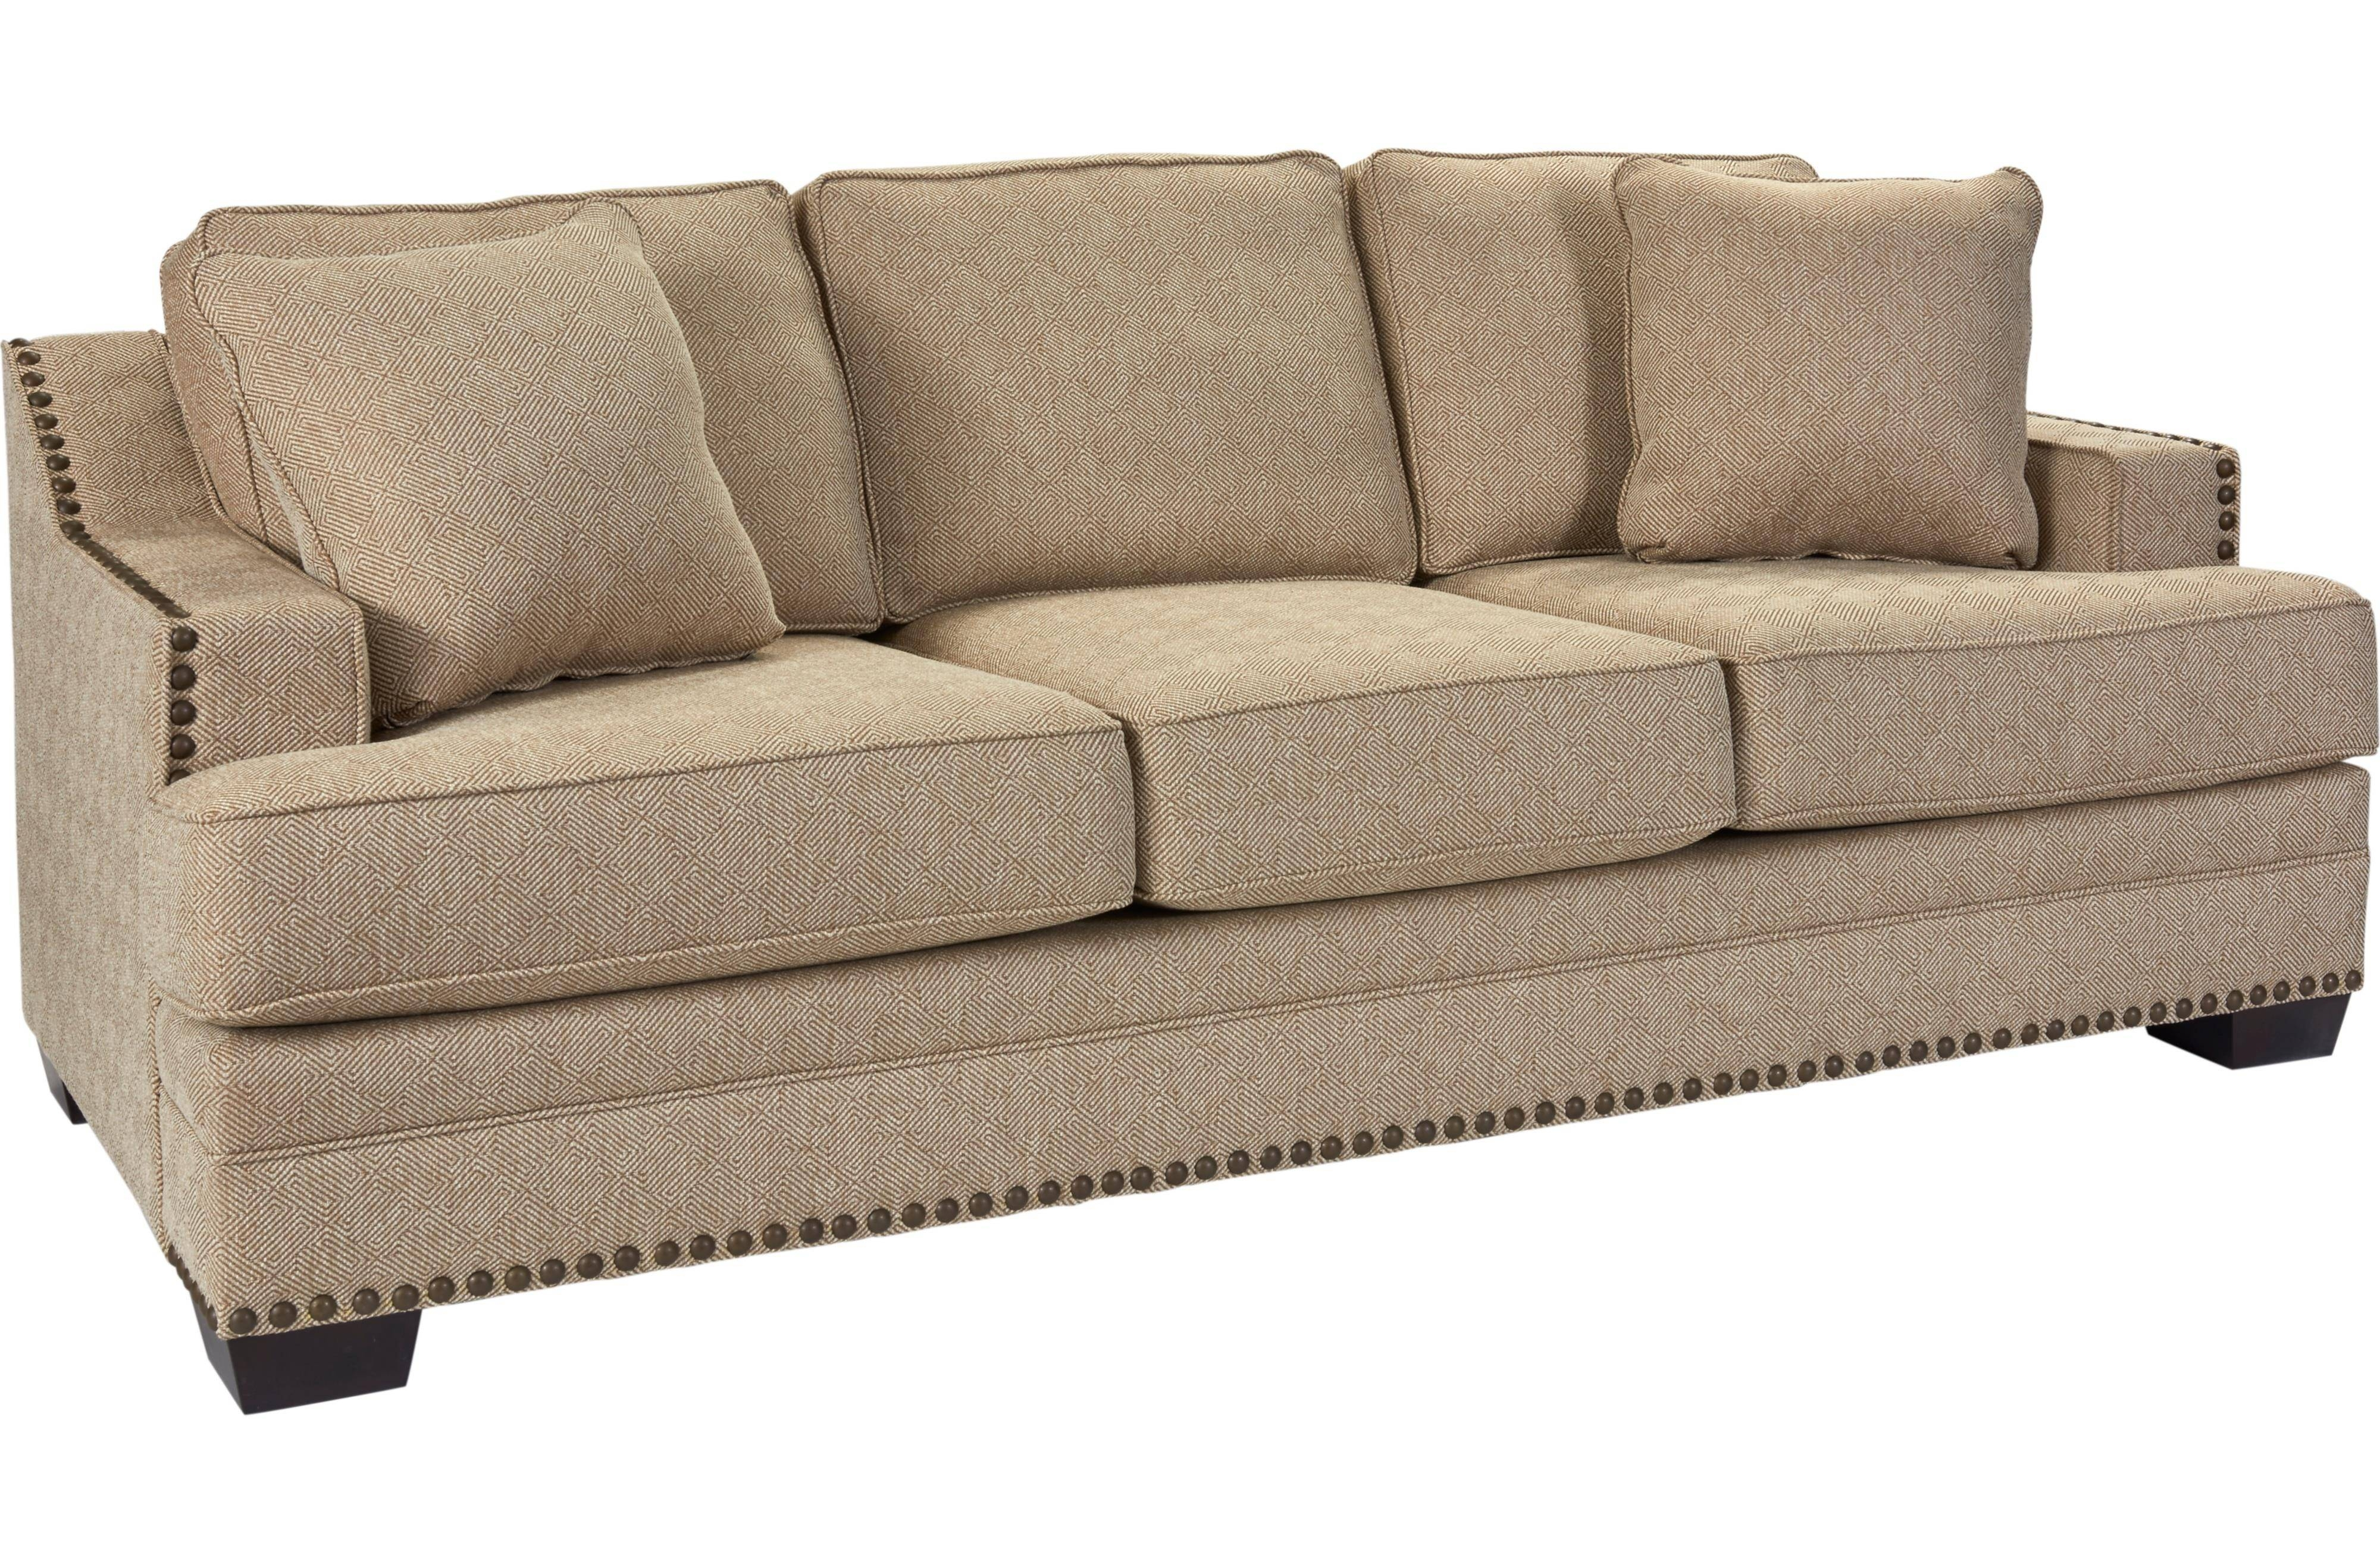 Broyhill Furniture Estes Park Contemporary Sofa With Nailhead Trim for Broyhill Reclining Sofas (Image 1 of 15)